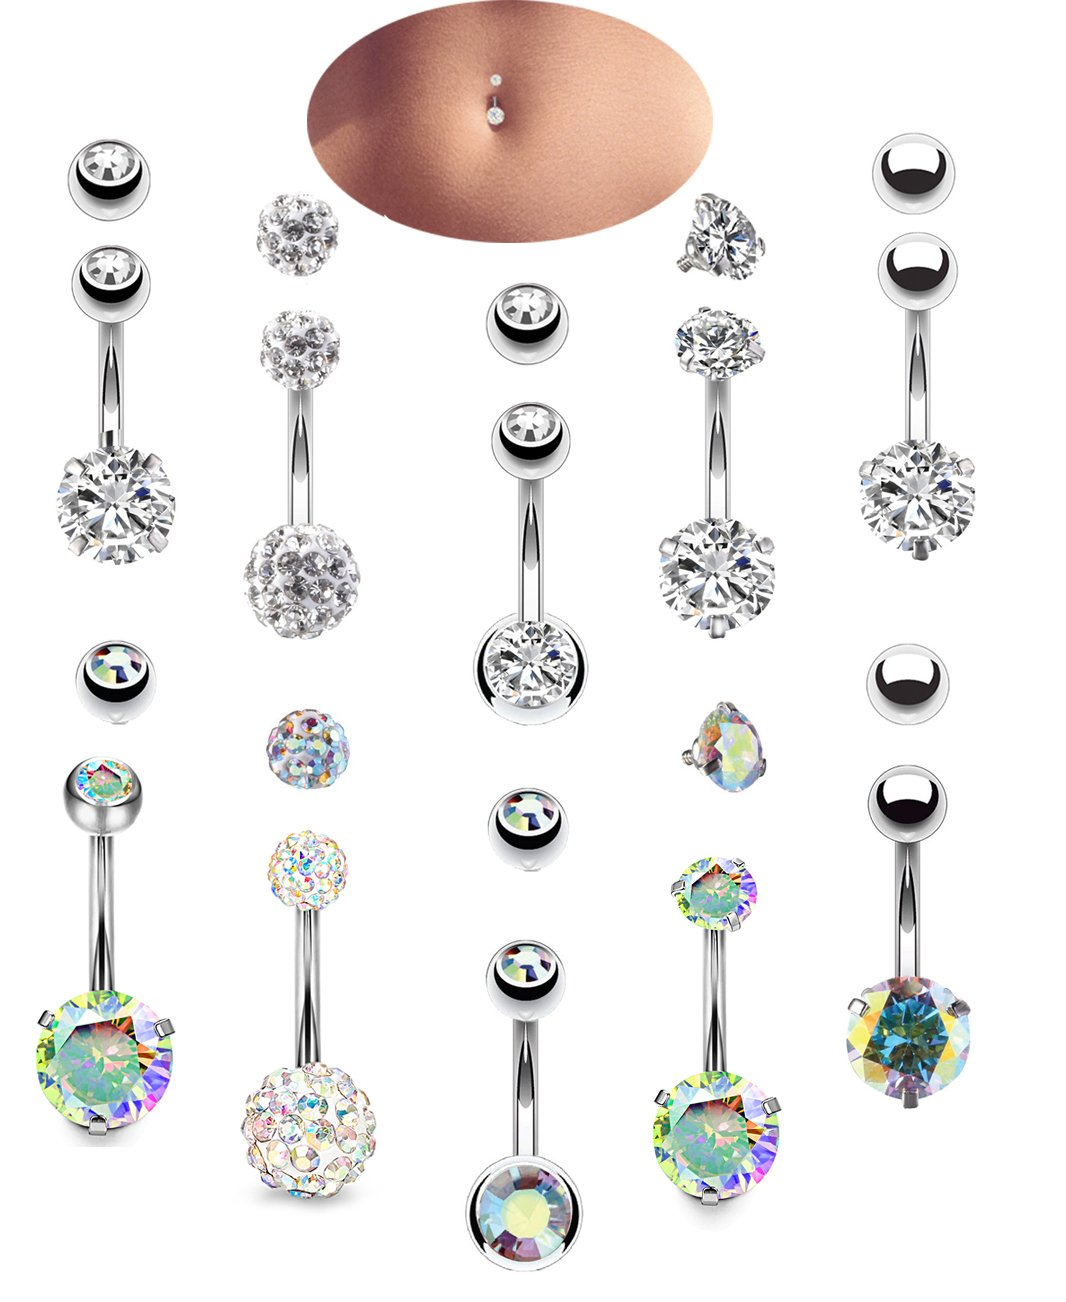 Engagement & Wedding Jewelry & Watches Rainbow Cz Top Drop Dangle Silver Surgical Steel Navel Belly Button Ring Terrific Value